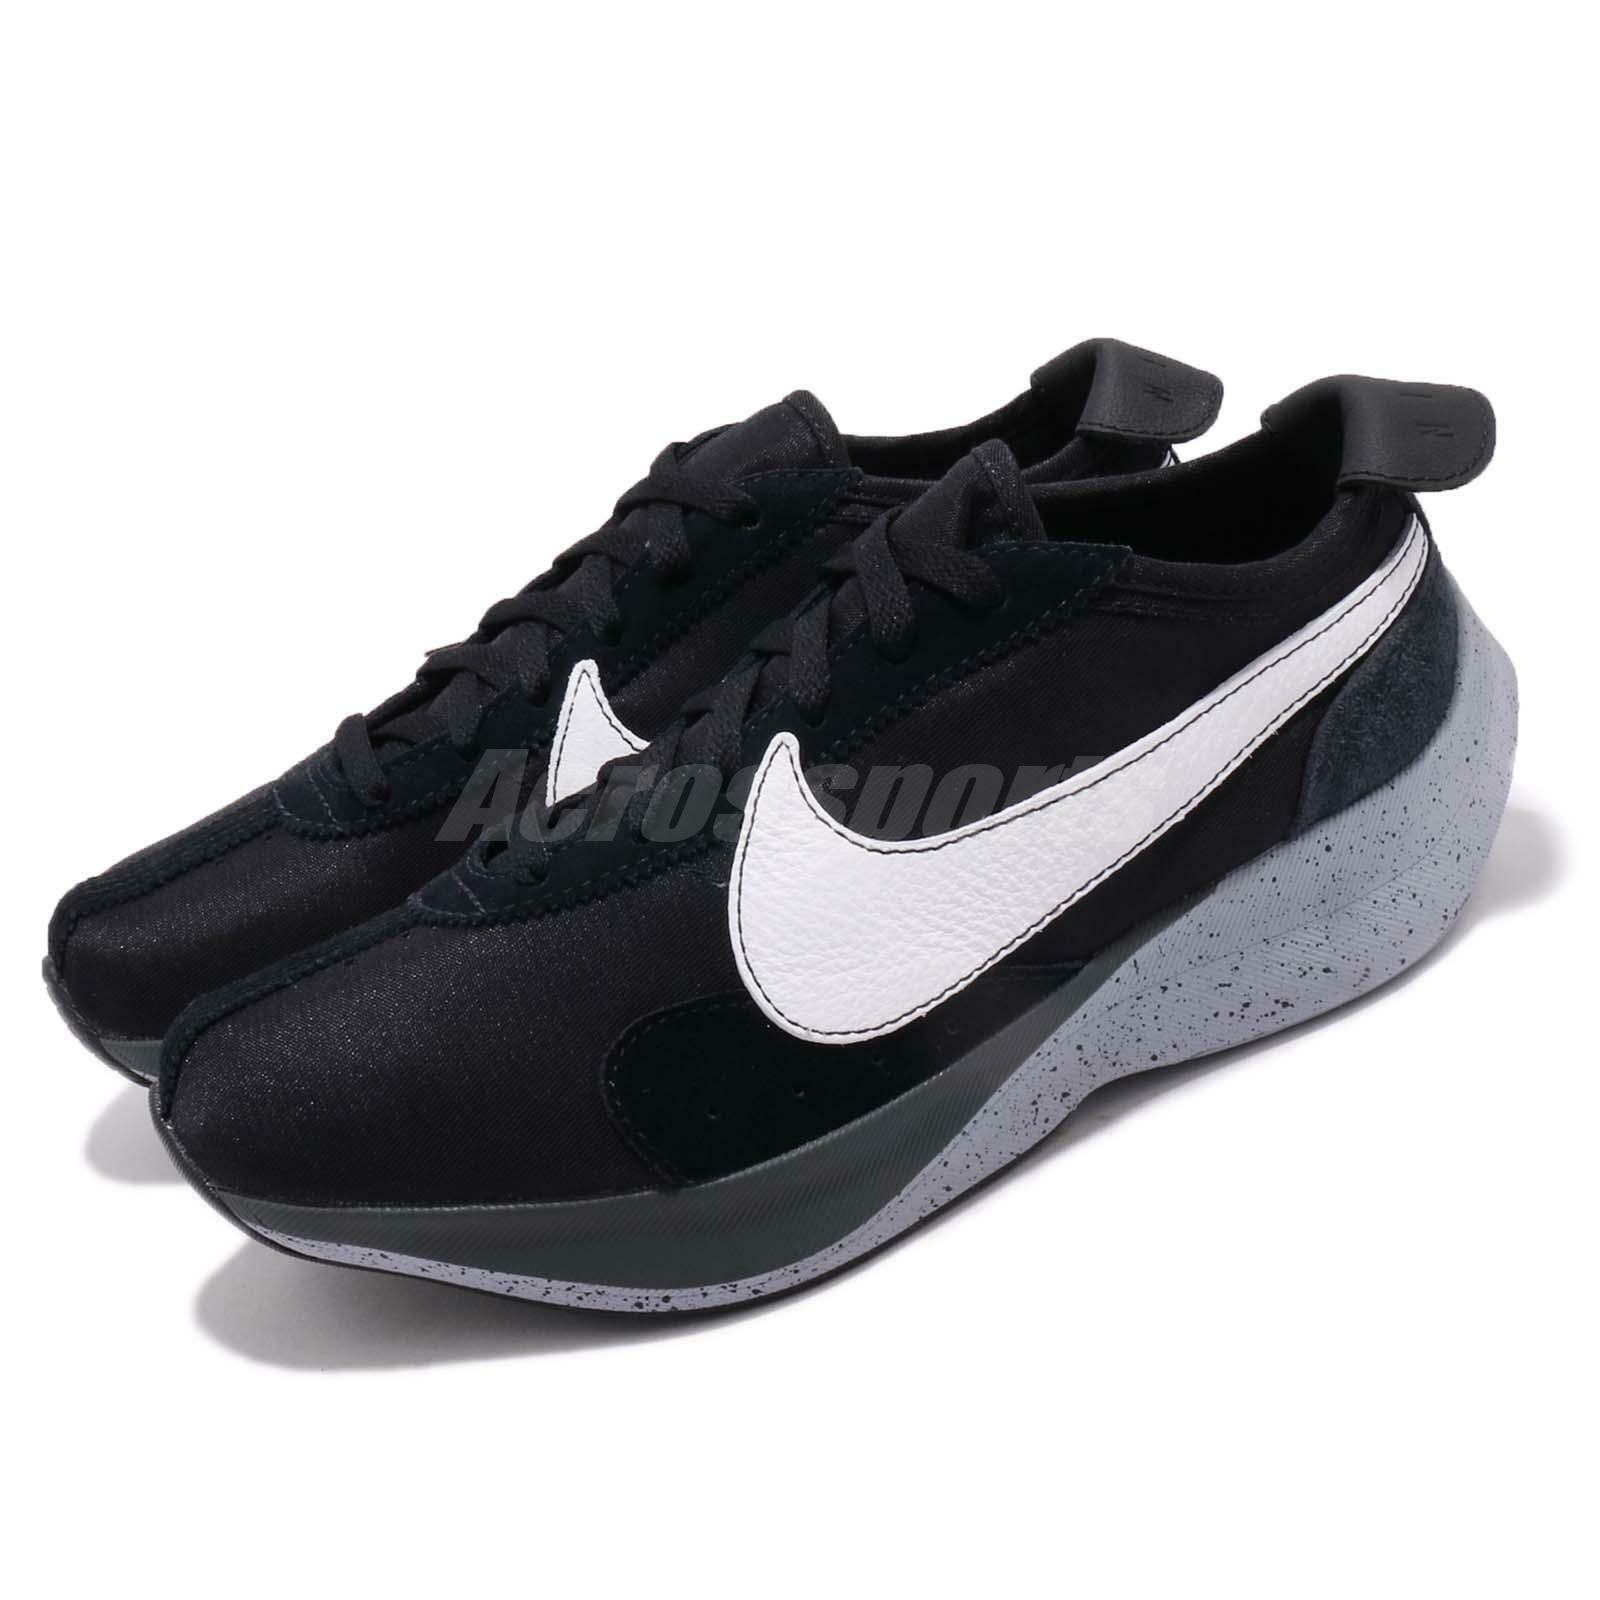 Nike Moon Racer Noir Blanc  Gris  Homme Running Chaussures Sneakers AQ4121-001